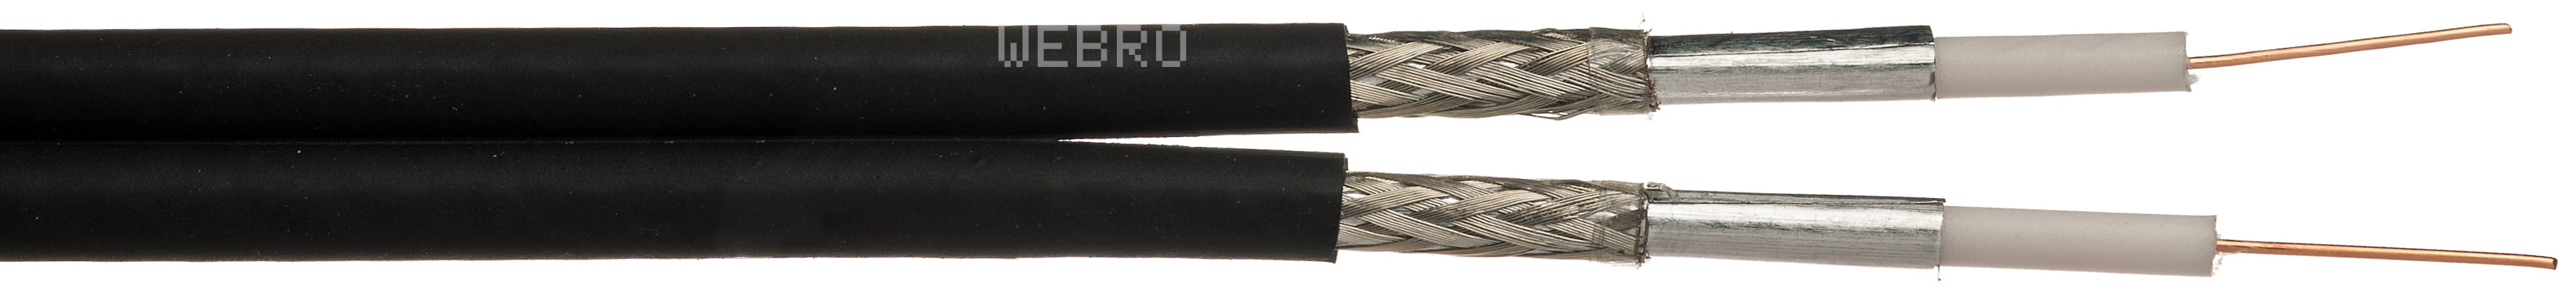 ccs twin cable, wf65 twin, cabnex twin cable